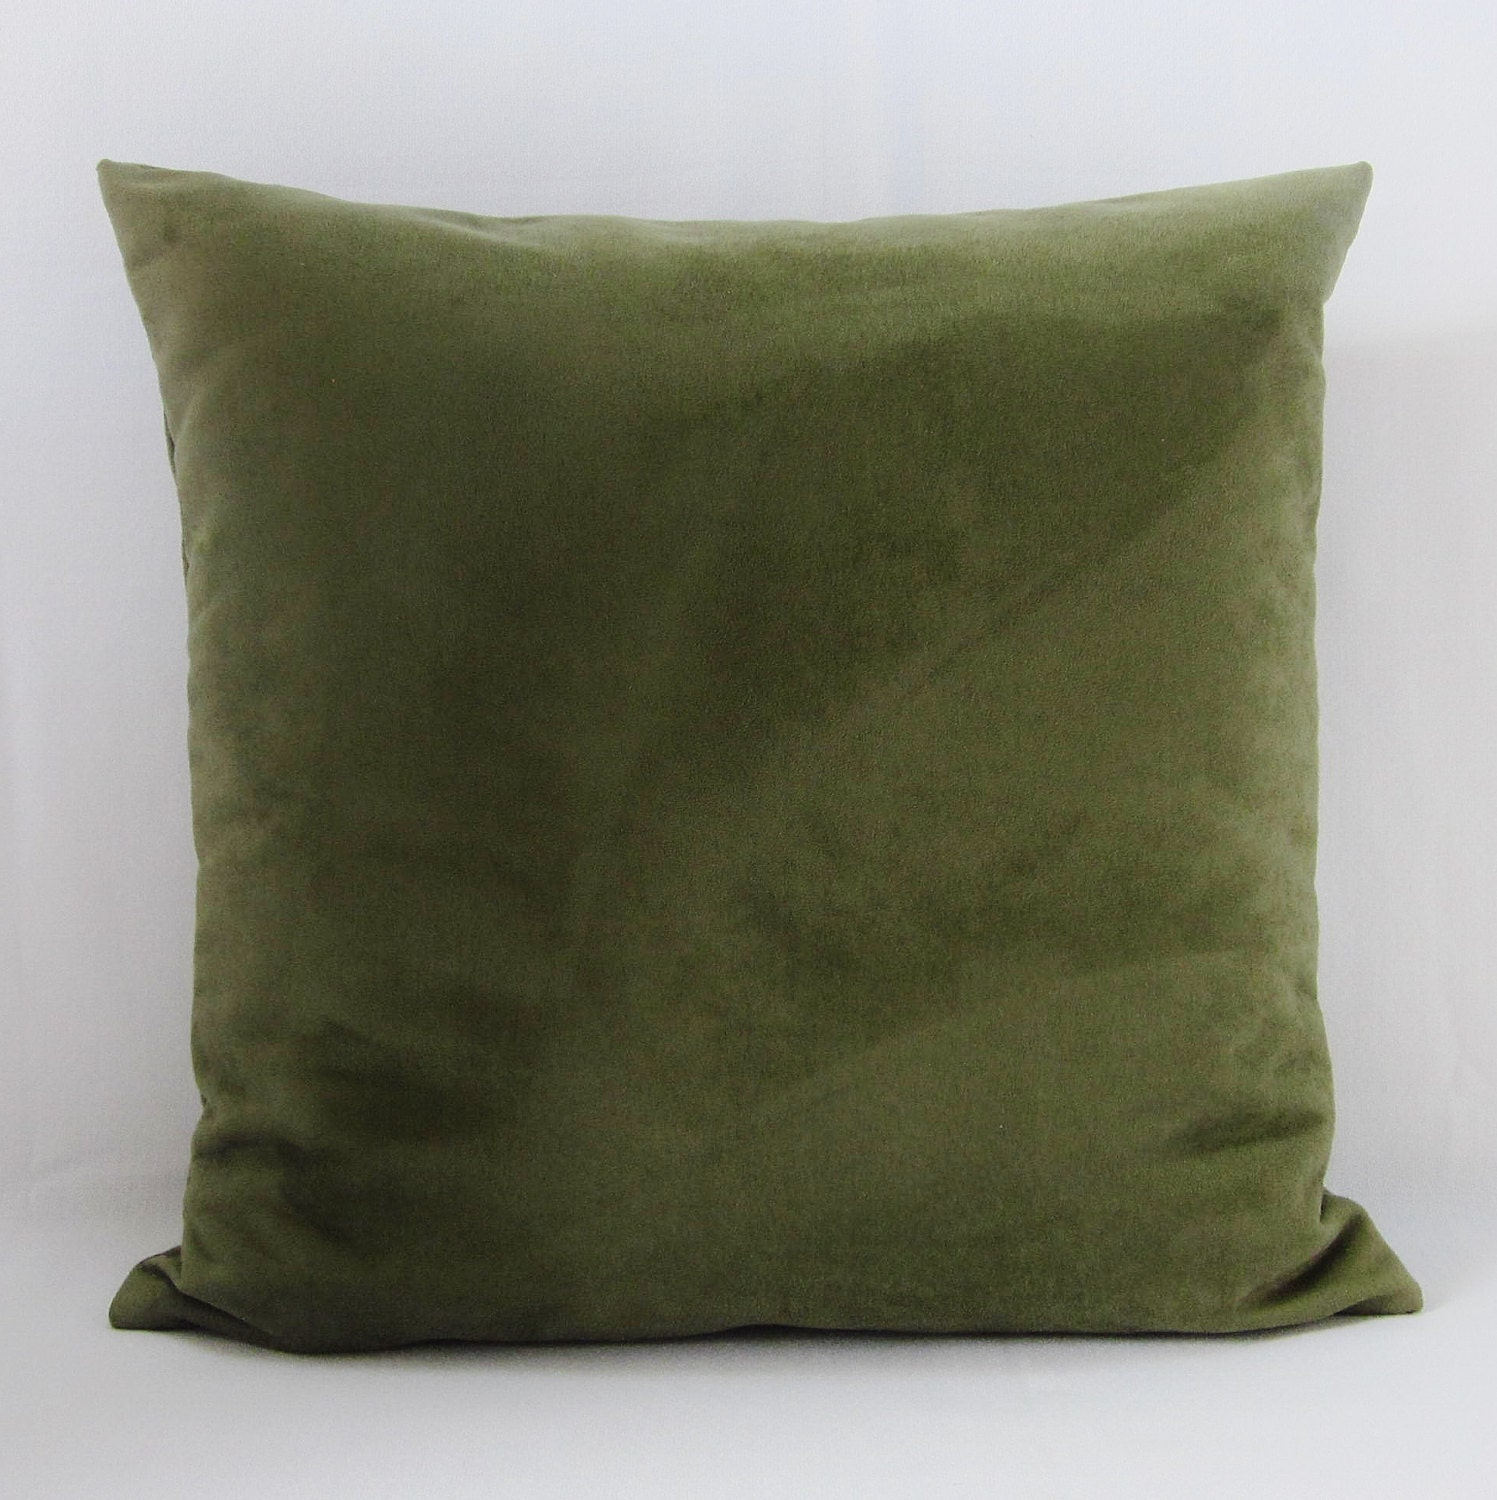 Olive Green Decorative Pillow : Olive Green Sage Suede Pillow Cover Decorative Throw Accent